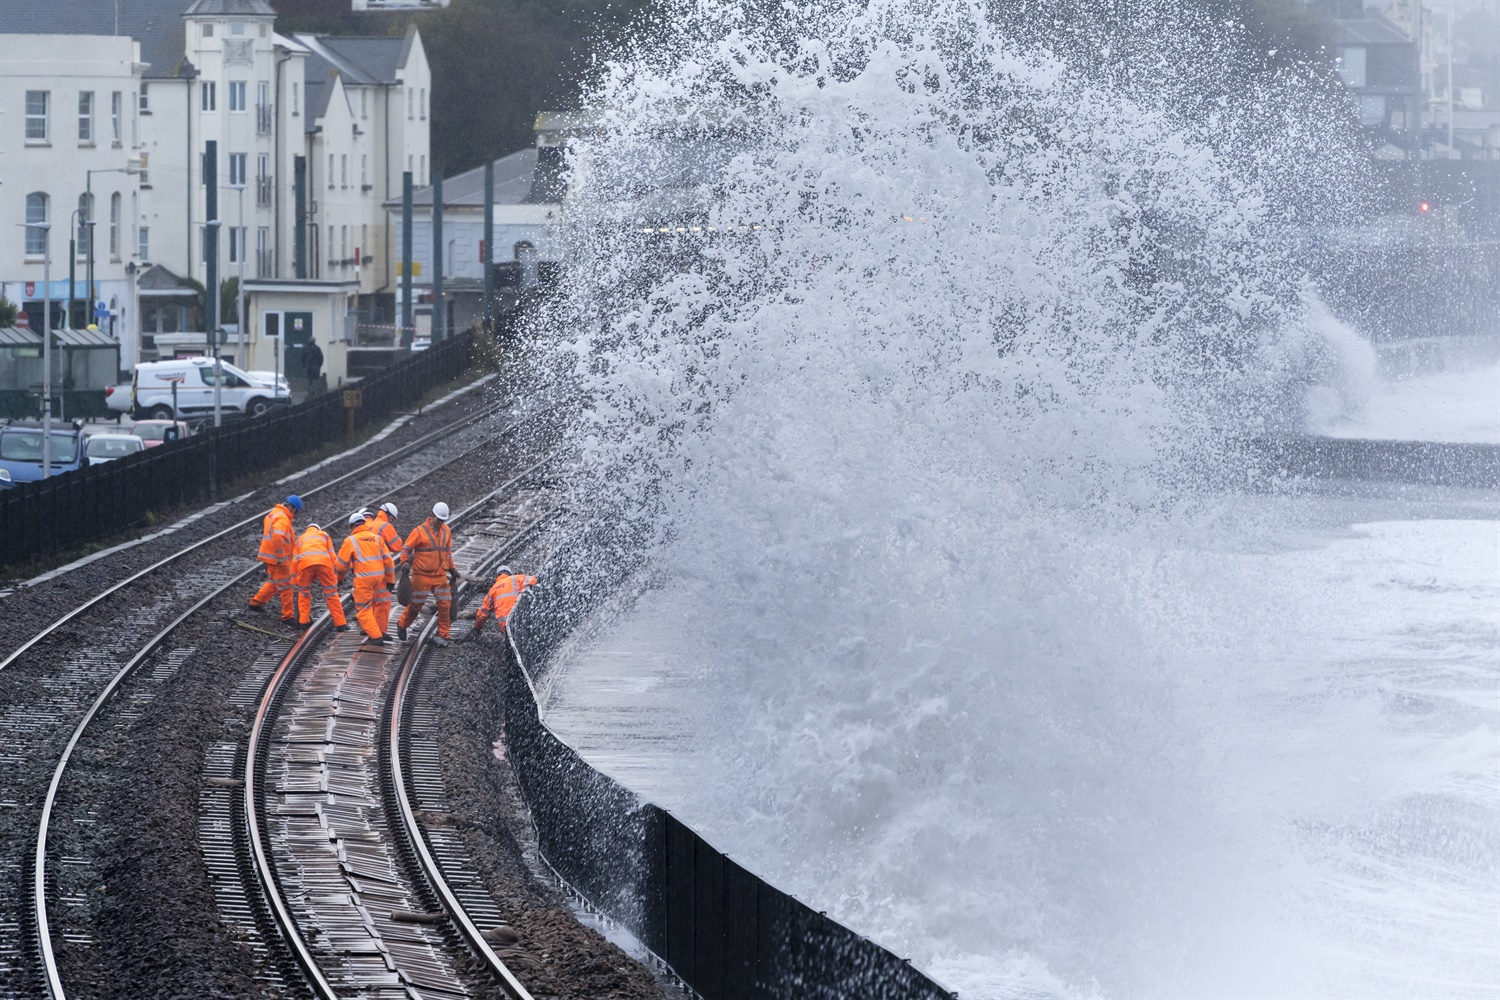 Long-awaited plans to build a sea wall to protect Dawlish rail line unveiled by Network Rail